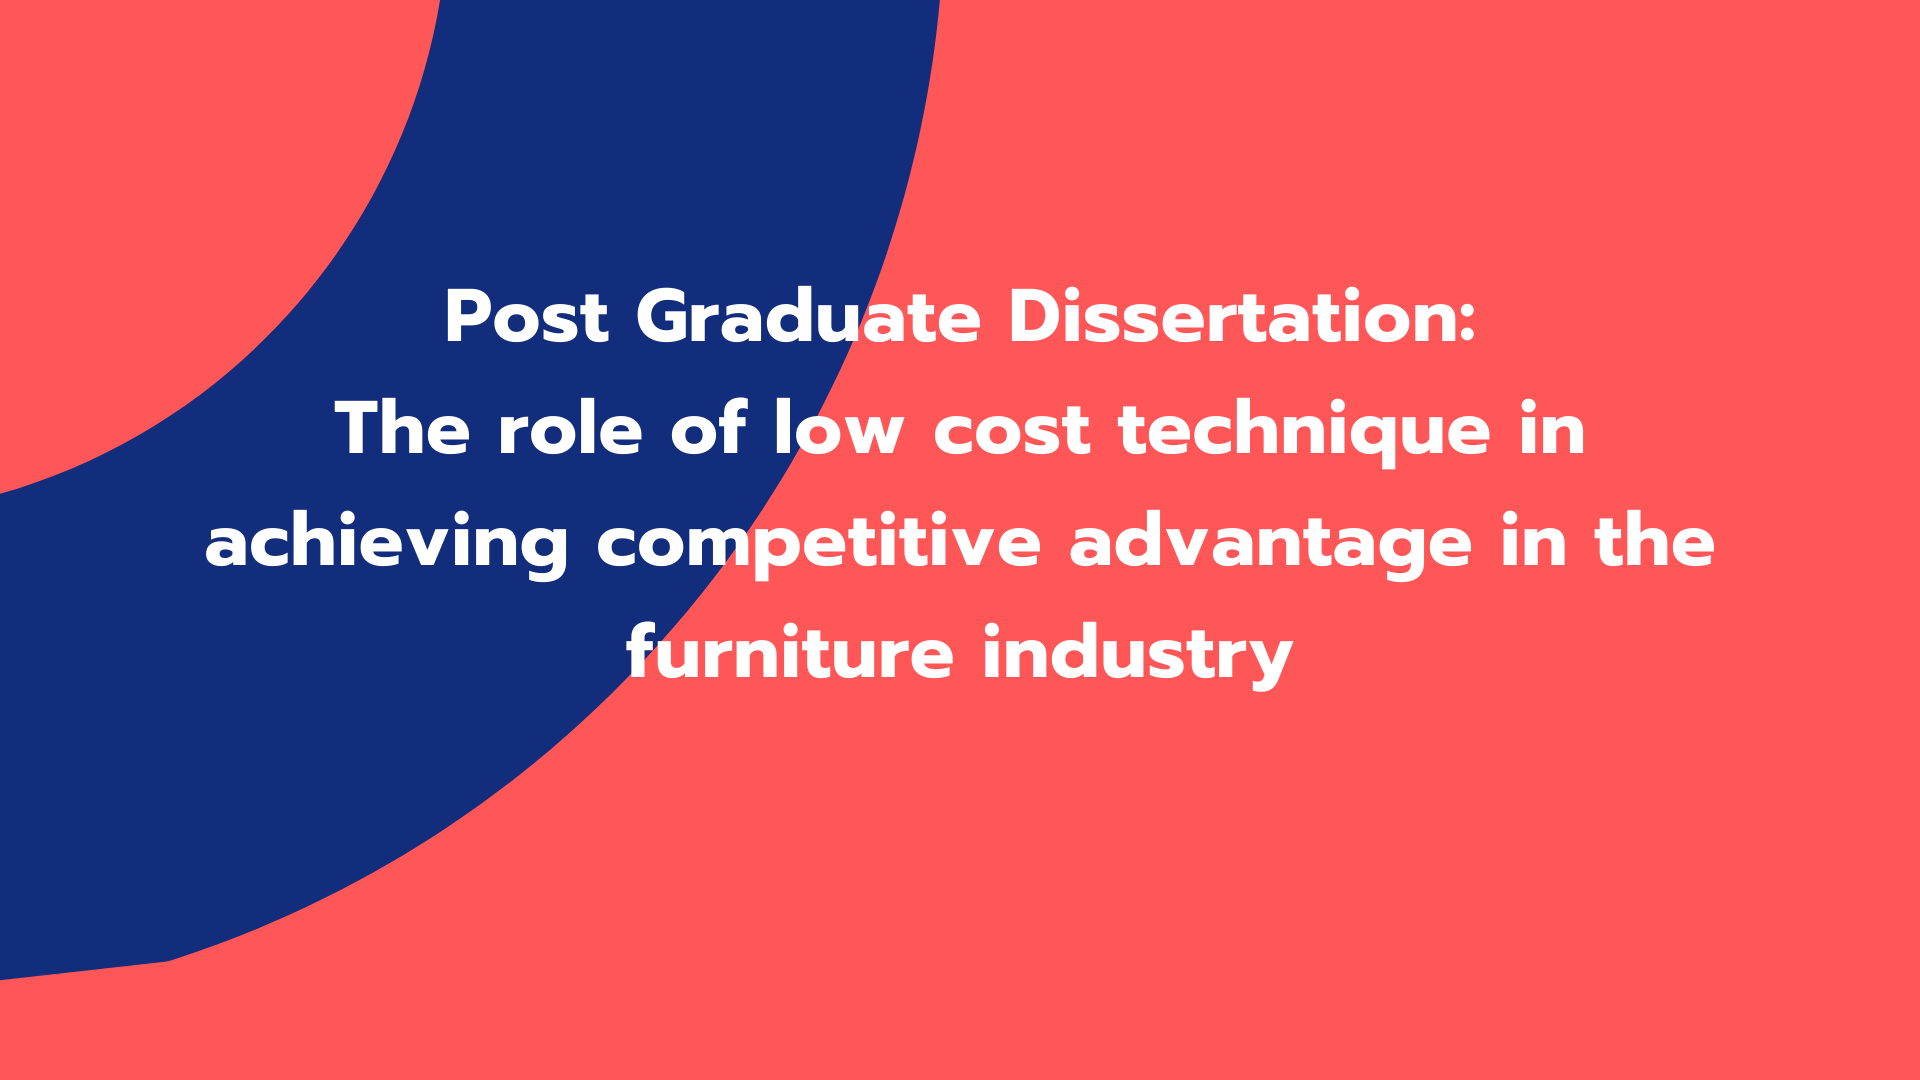 The role of low cost technique in achieving competitive advantage in the furniture industry